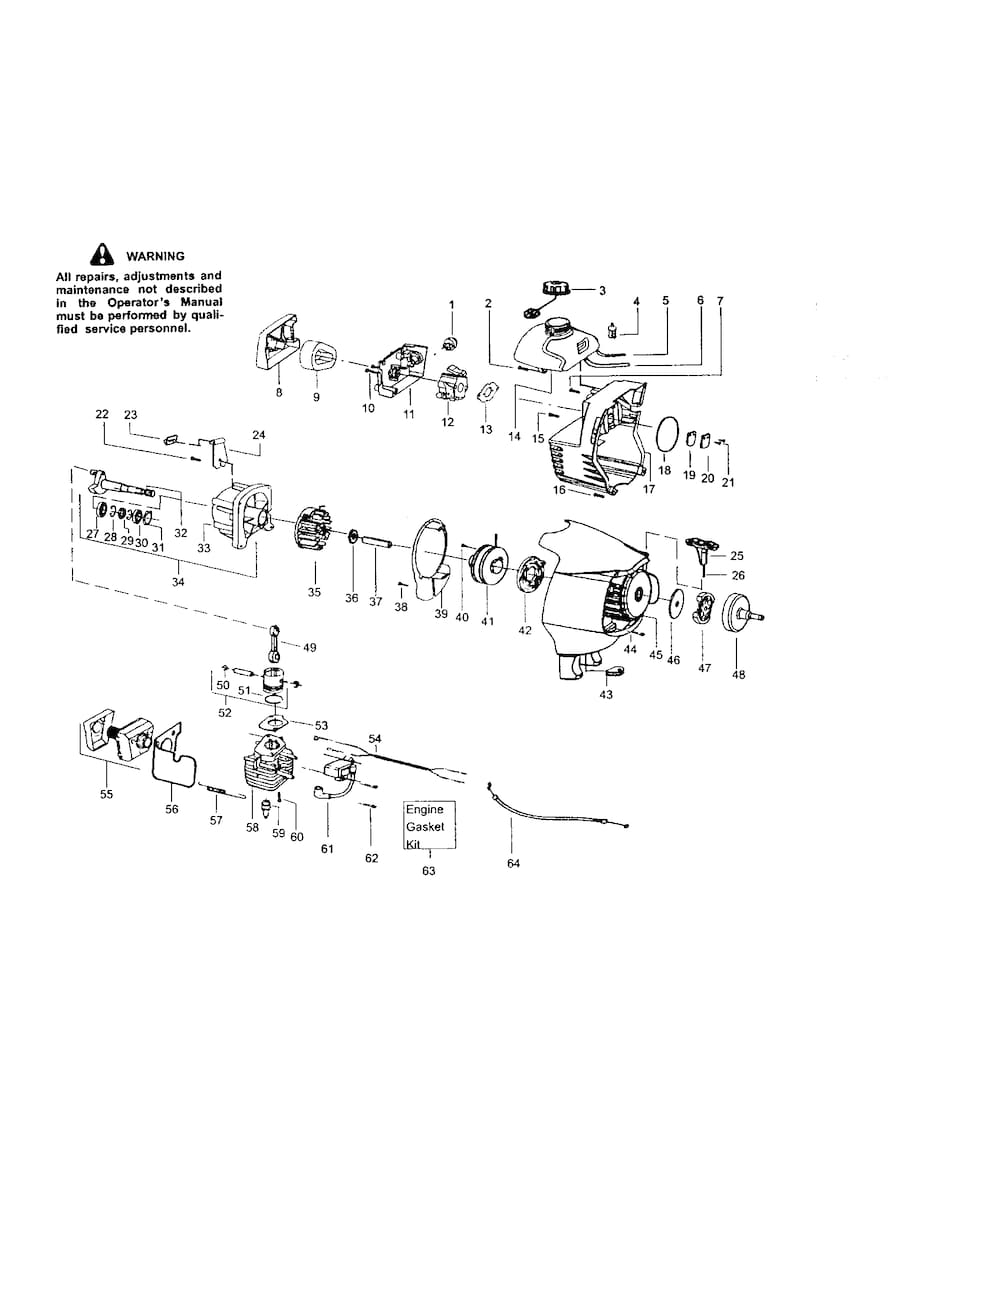 Craftsman Gas Line Trimmer/weedwacker Parts | Model 358795200 in Craftsman 32Cc Weed Wacker Parts Diagram